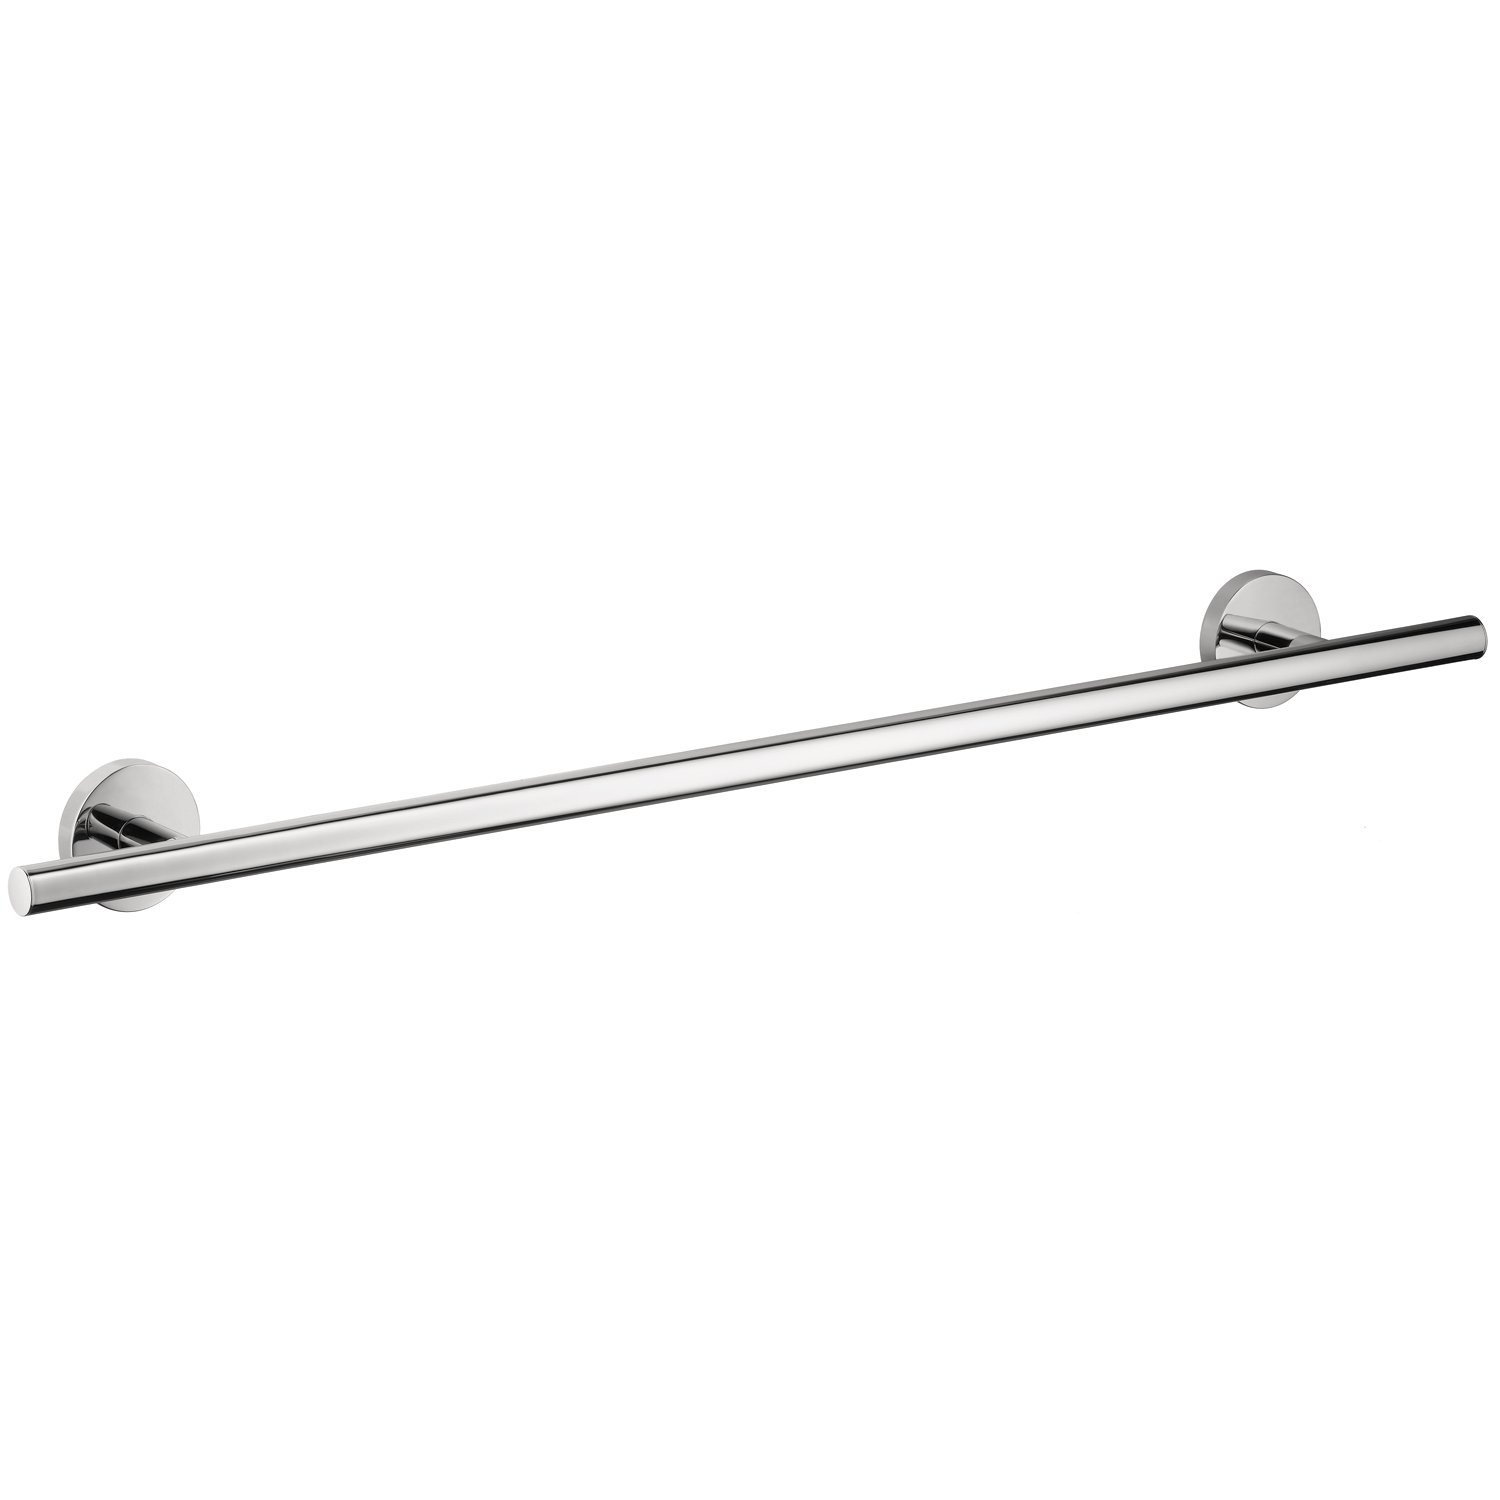 Hansgrohe 40516000 S and E Accessories Towel Bar, 24-Inch, Chrome